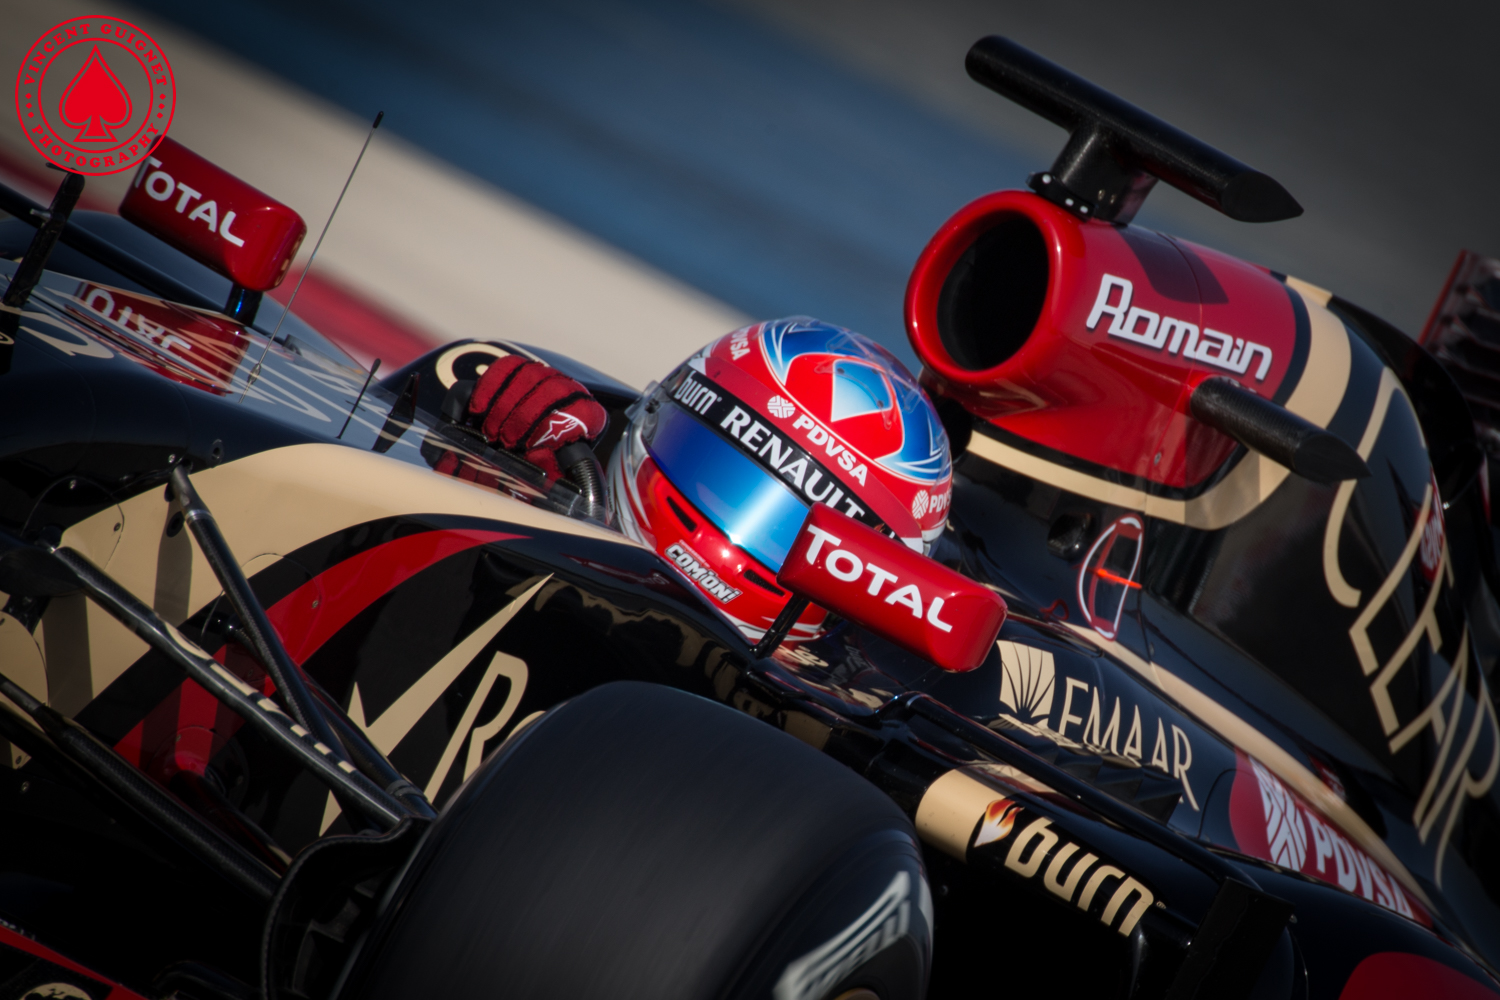 Romain Grosjean - Lotus